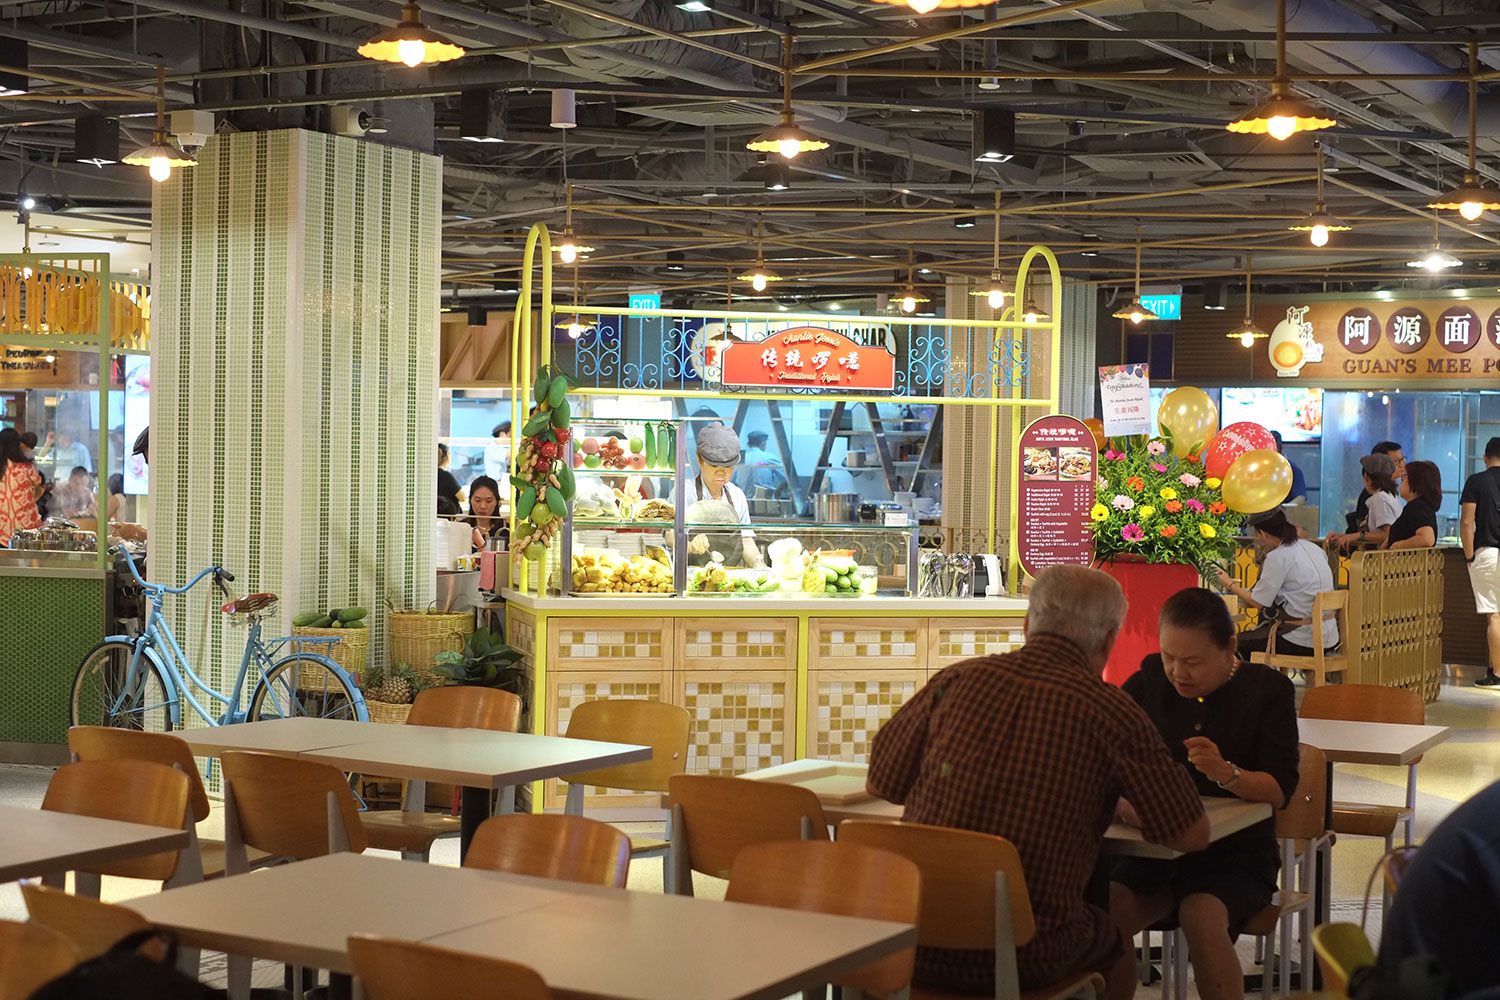 Food Republic at Wisma Atria Reopens in a Nostalgic Nanyang-Inspired Theme